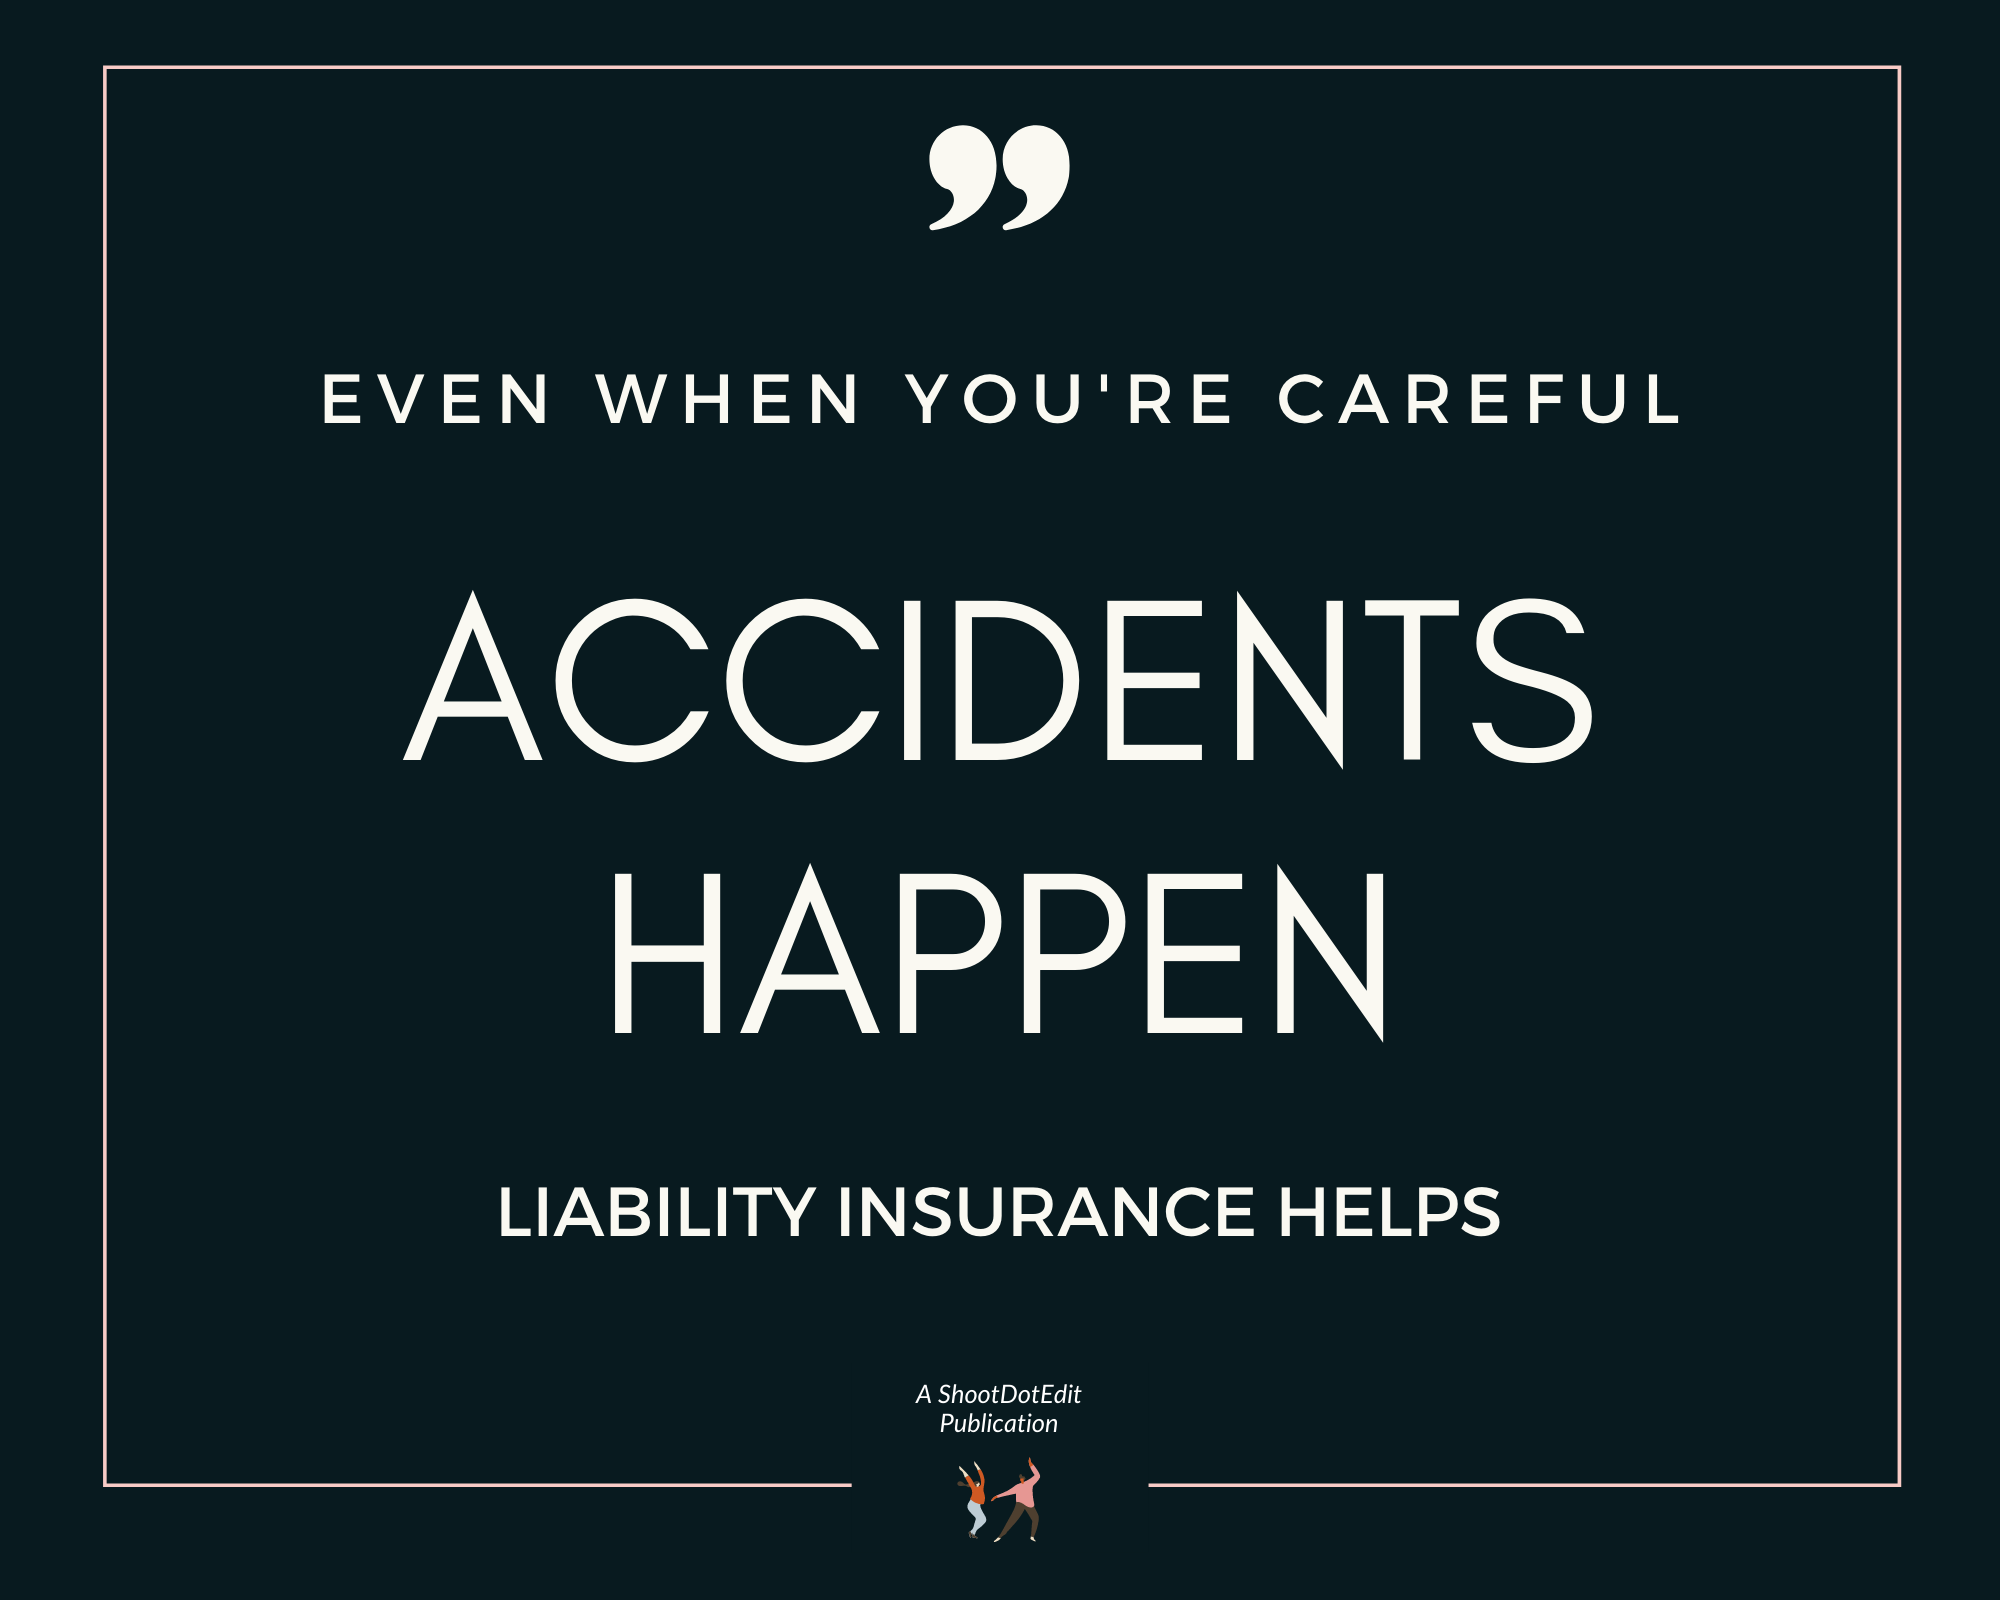 Graphic displaying - Even when you're careful accidents happen liability insurance helps